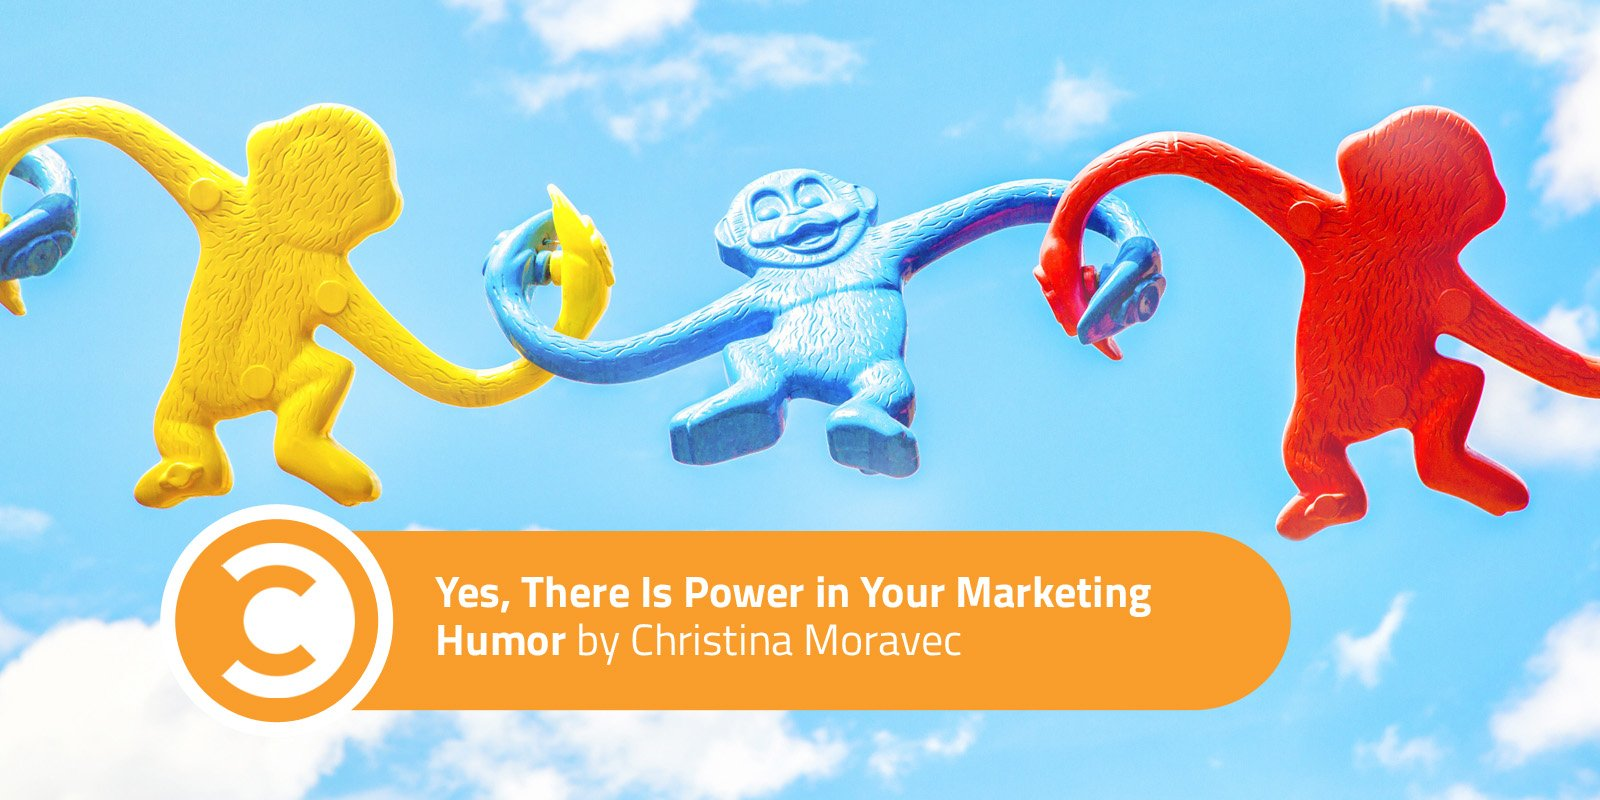 Yes, There Is Power in Your Marketing Humor